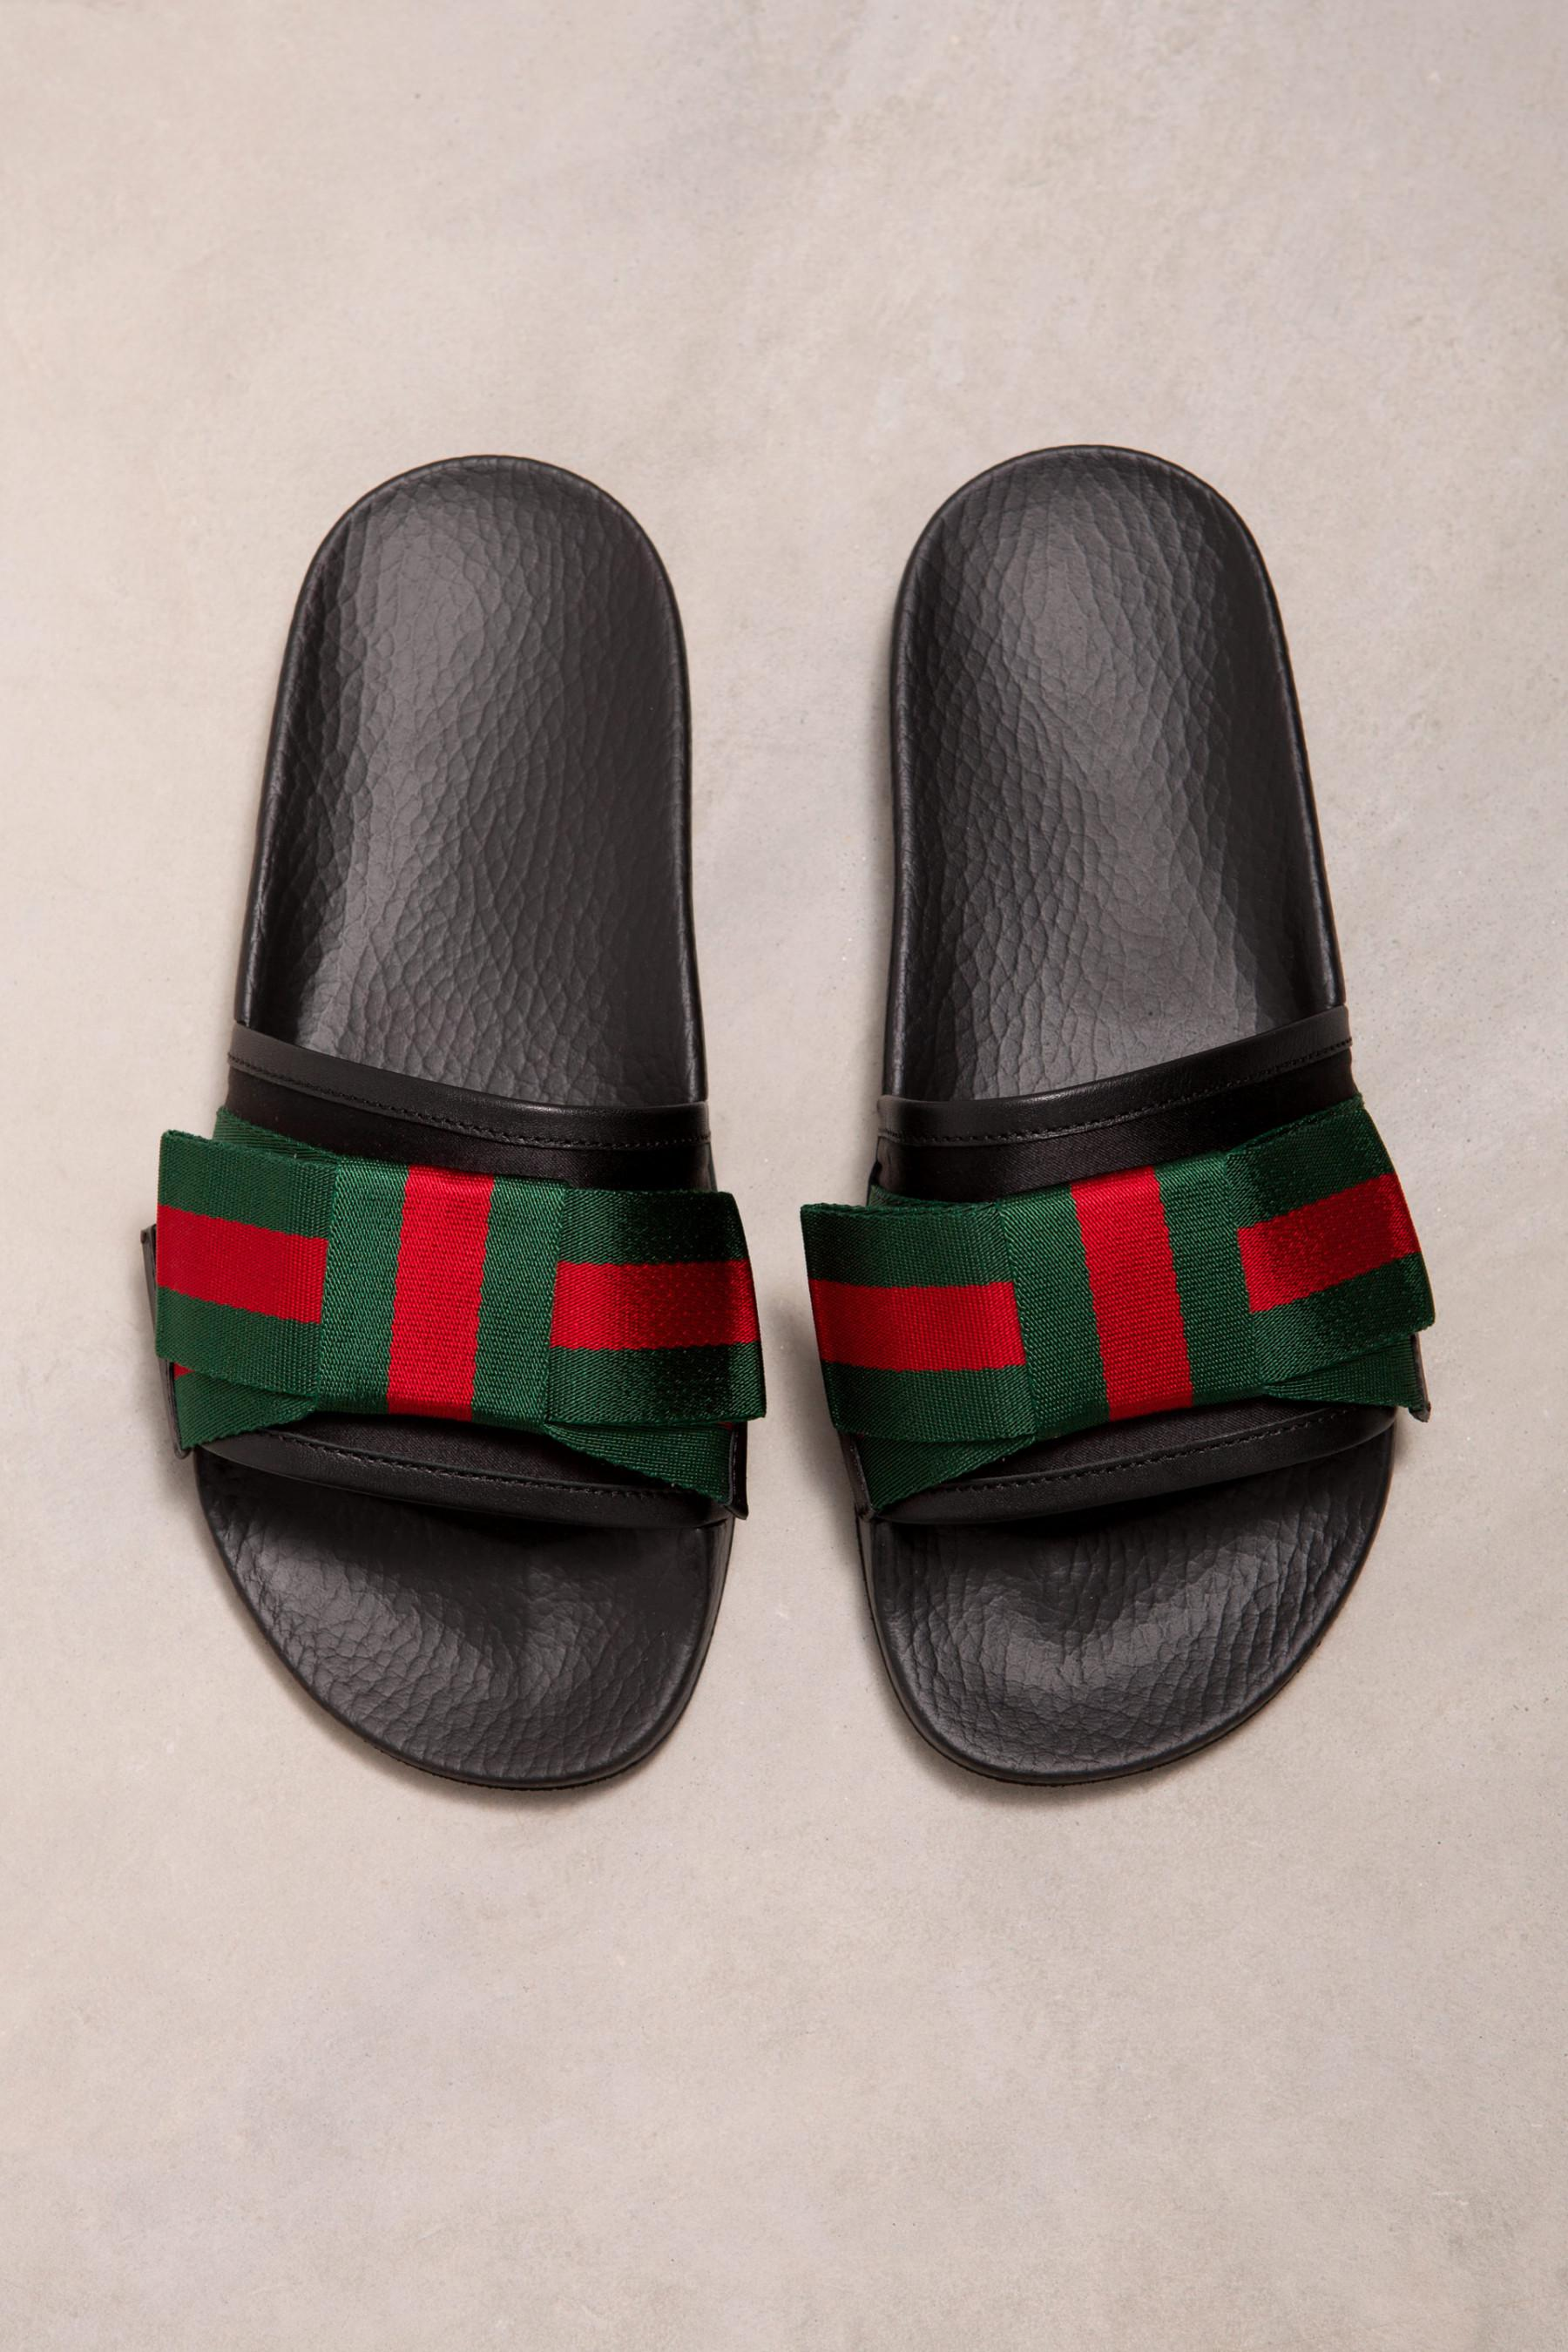 91e53d4d469 Gucci Satin Slide With Web Bow in Black - Lyst